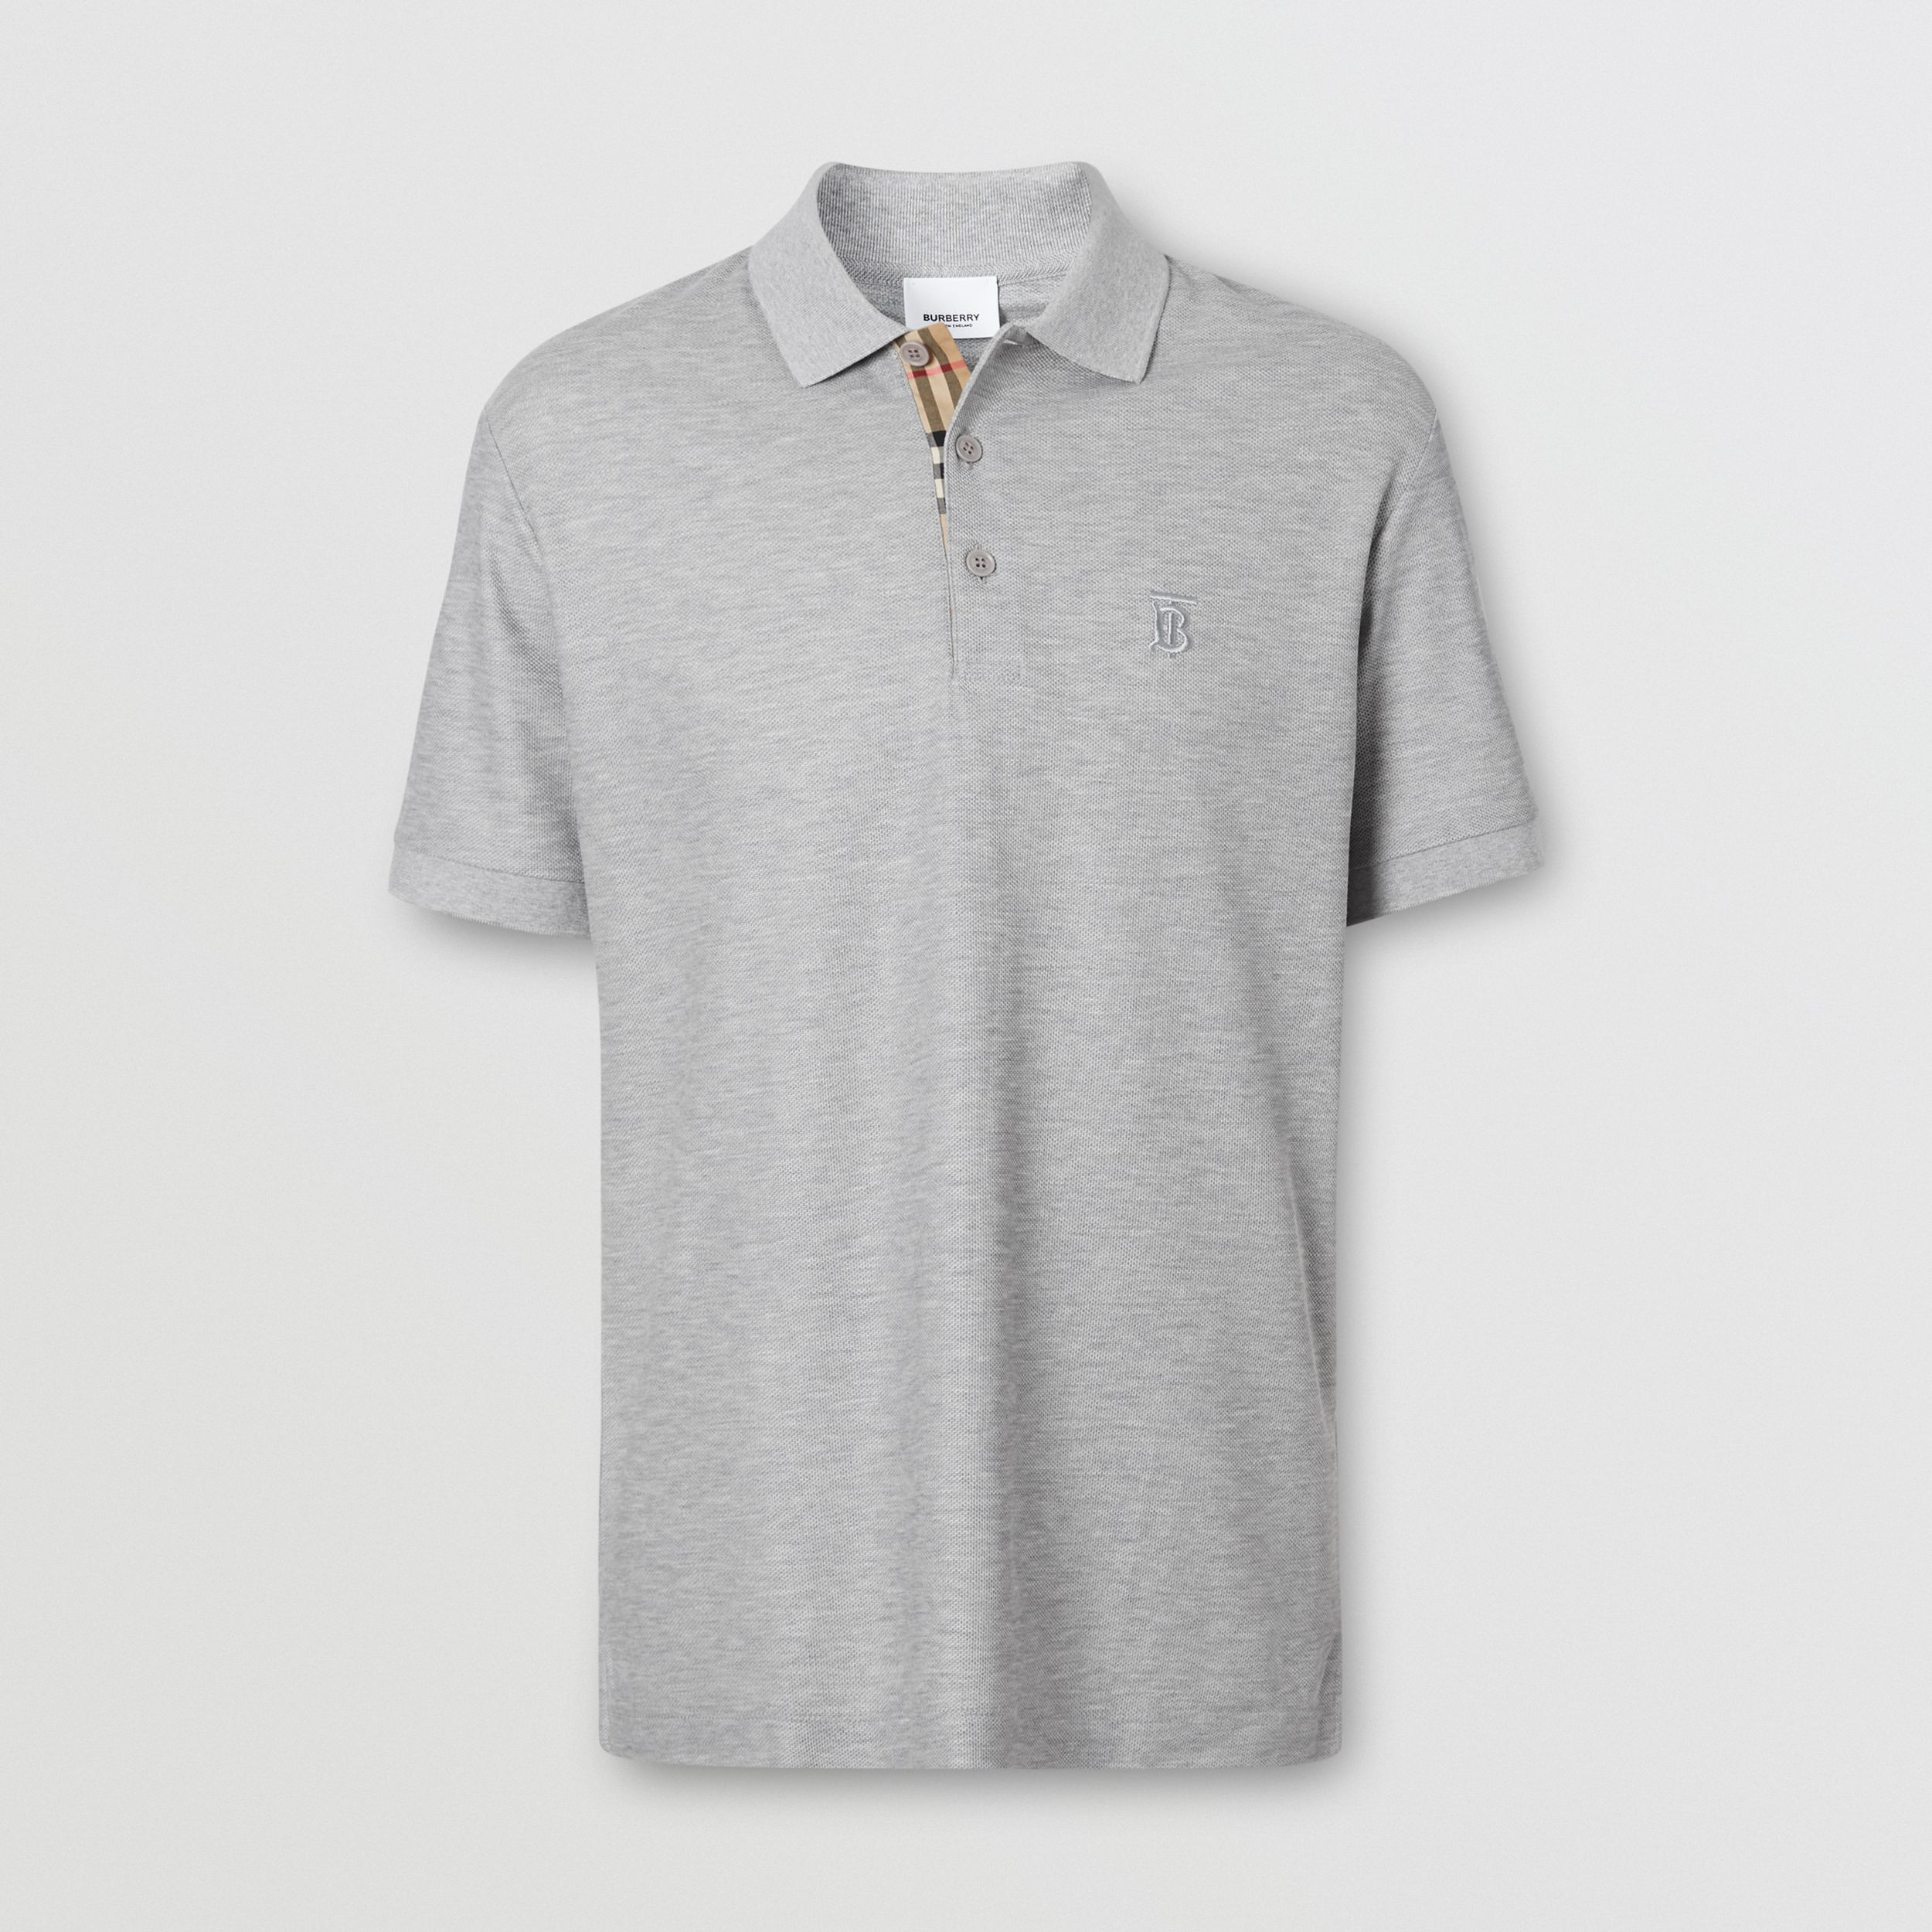 Monogram Motif Cotton Piqué Polo Shirt in Pale Grey Melange - Men | Burberry - 4